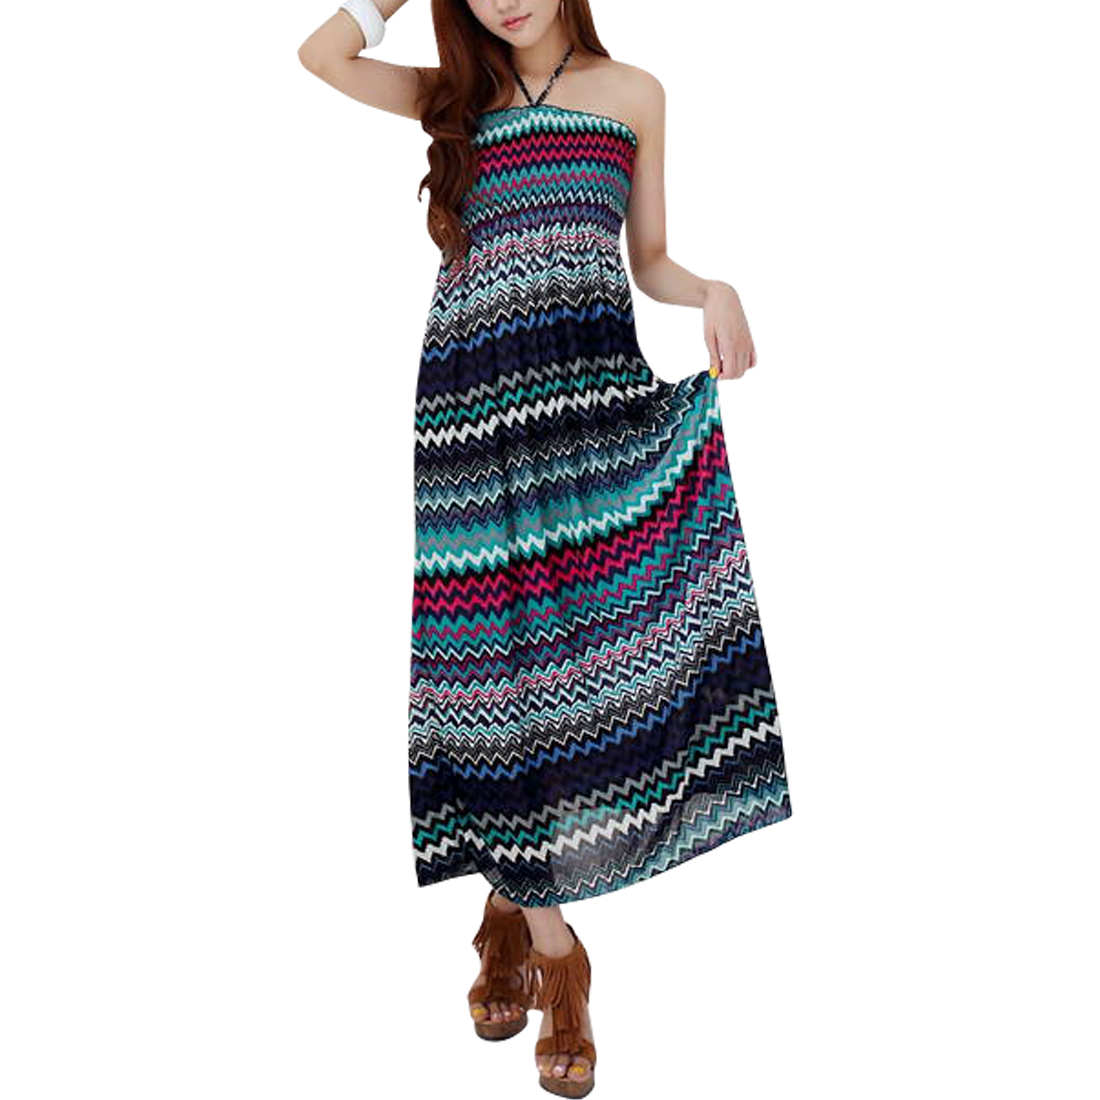 Women Halter Neck Style Elastic Waist Novelty Pattern Summer Dress XS Blue